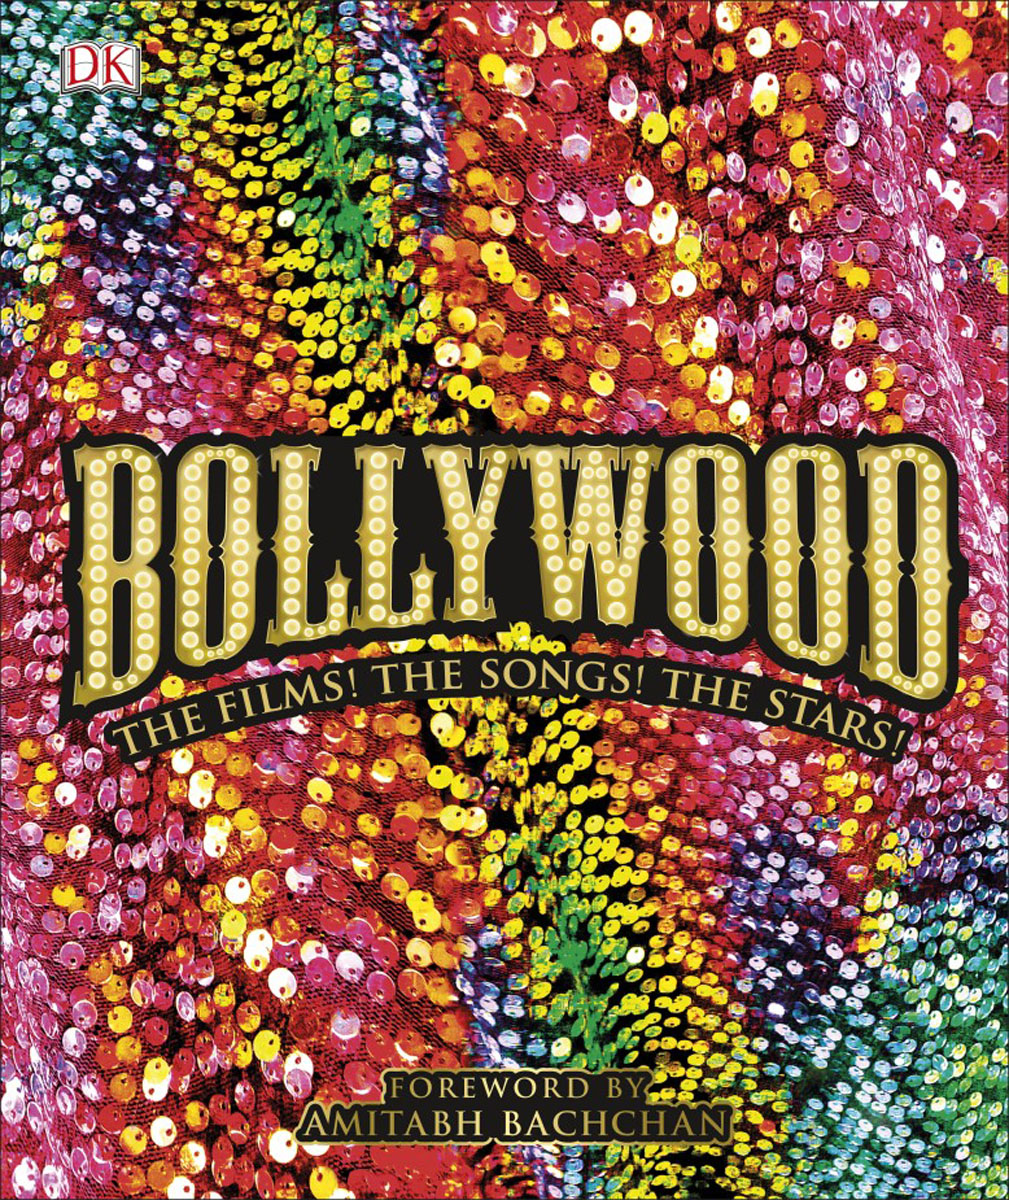 Bollywood: The Films! The Songs! The Stars! (Definitive Visual Guide) peeter urm viimane raund page 6